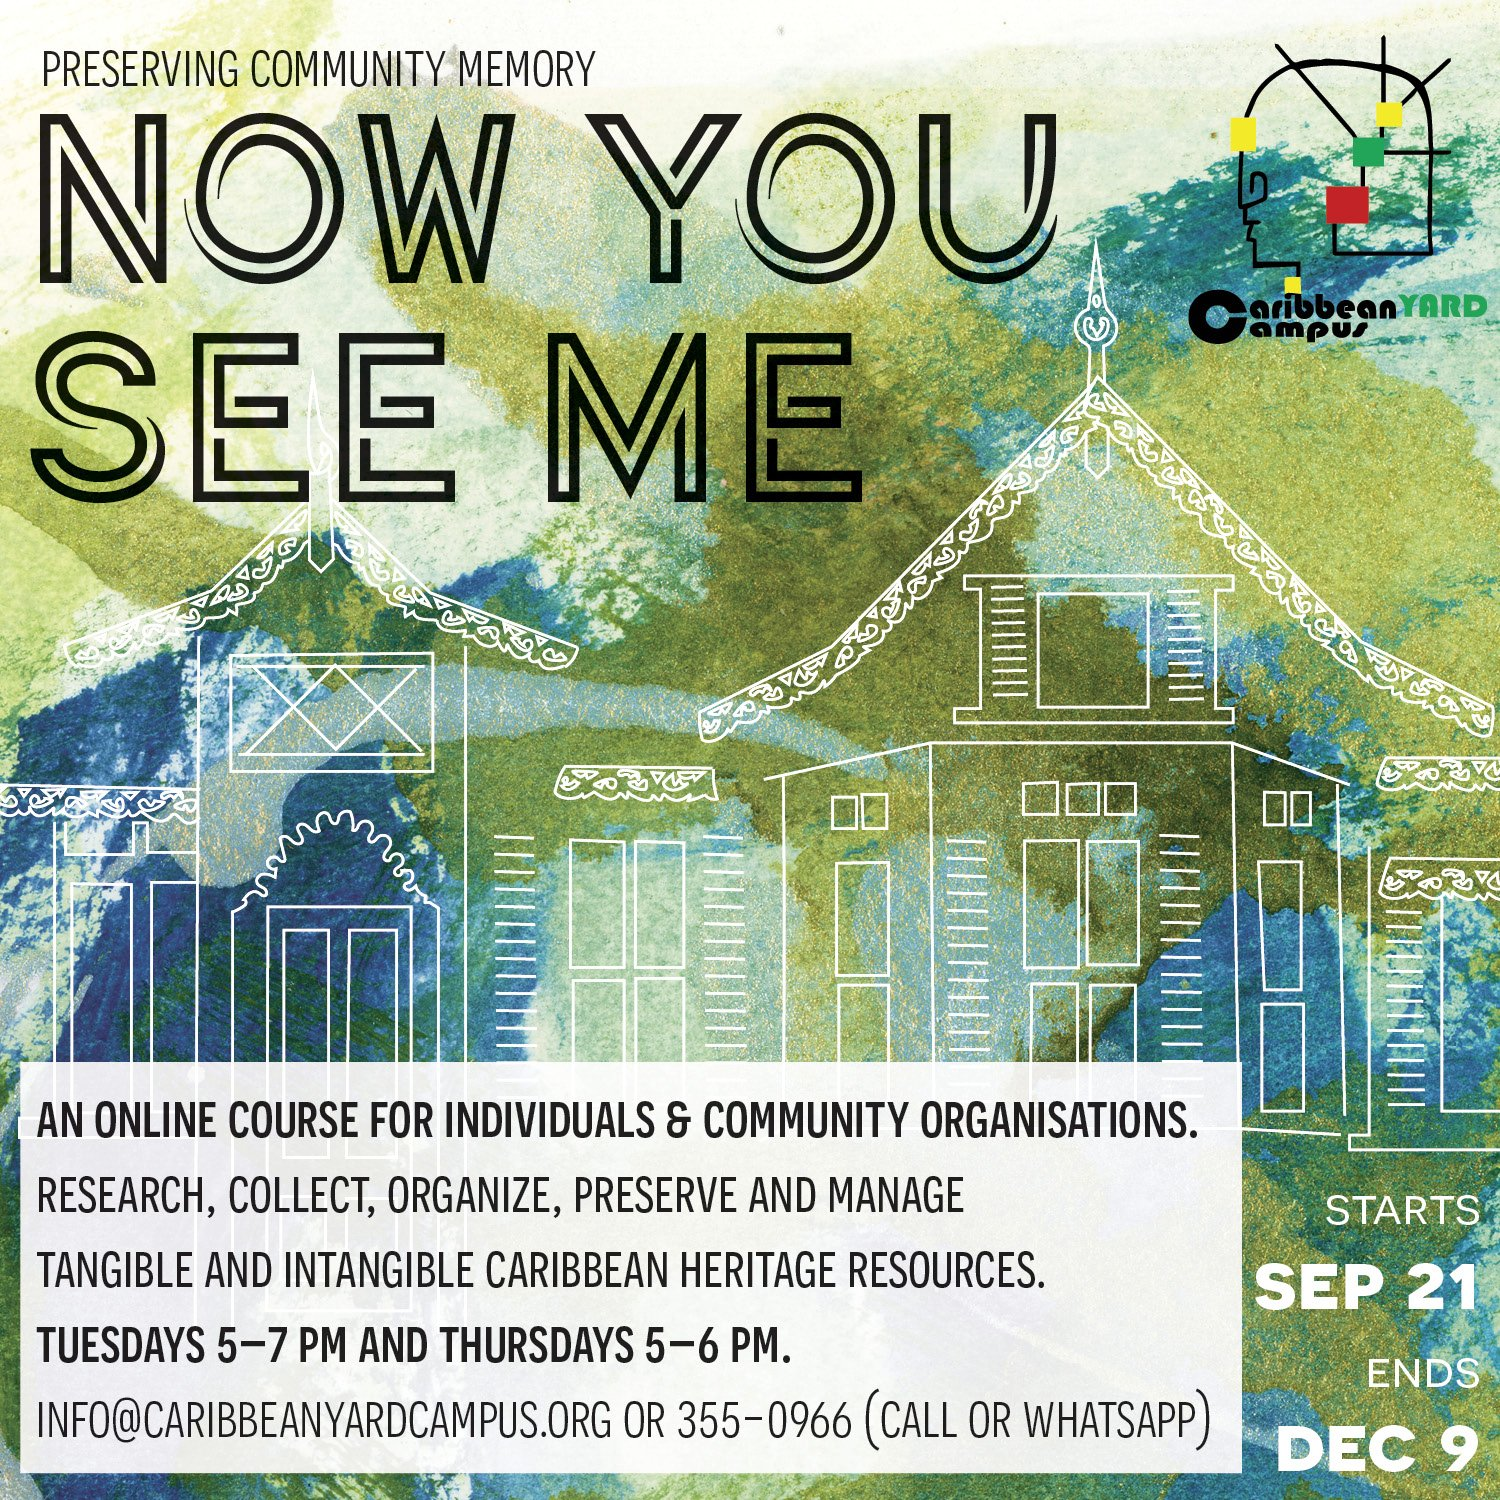 Now You See Me: Preserving Community Memory